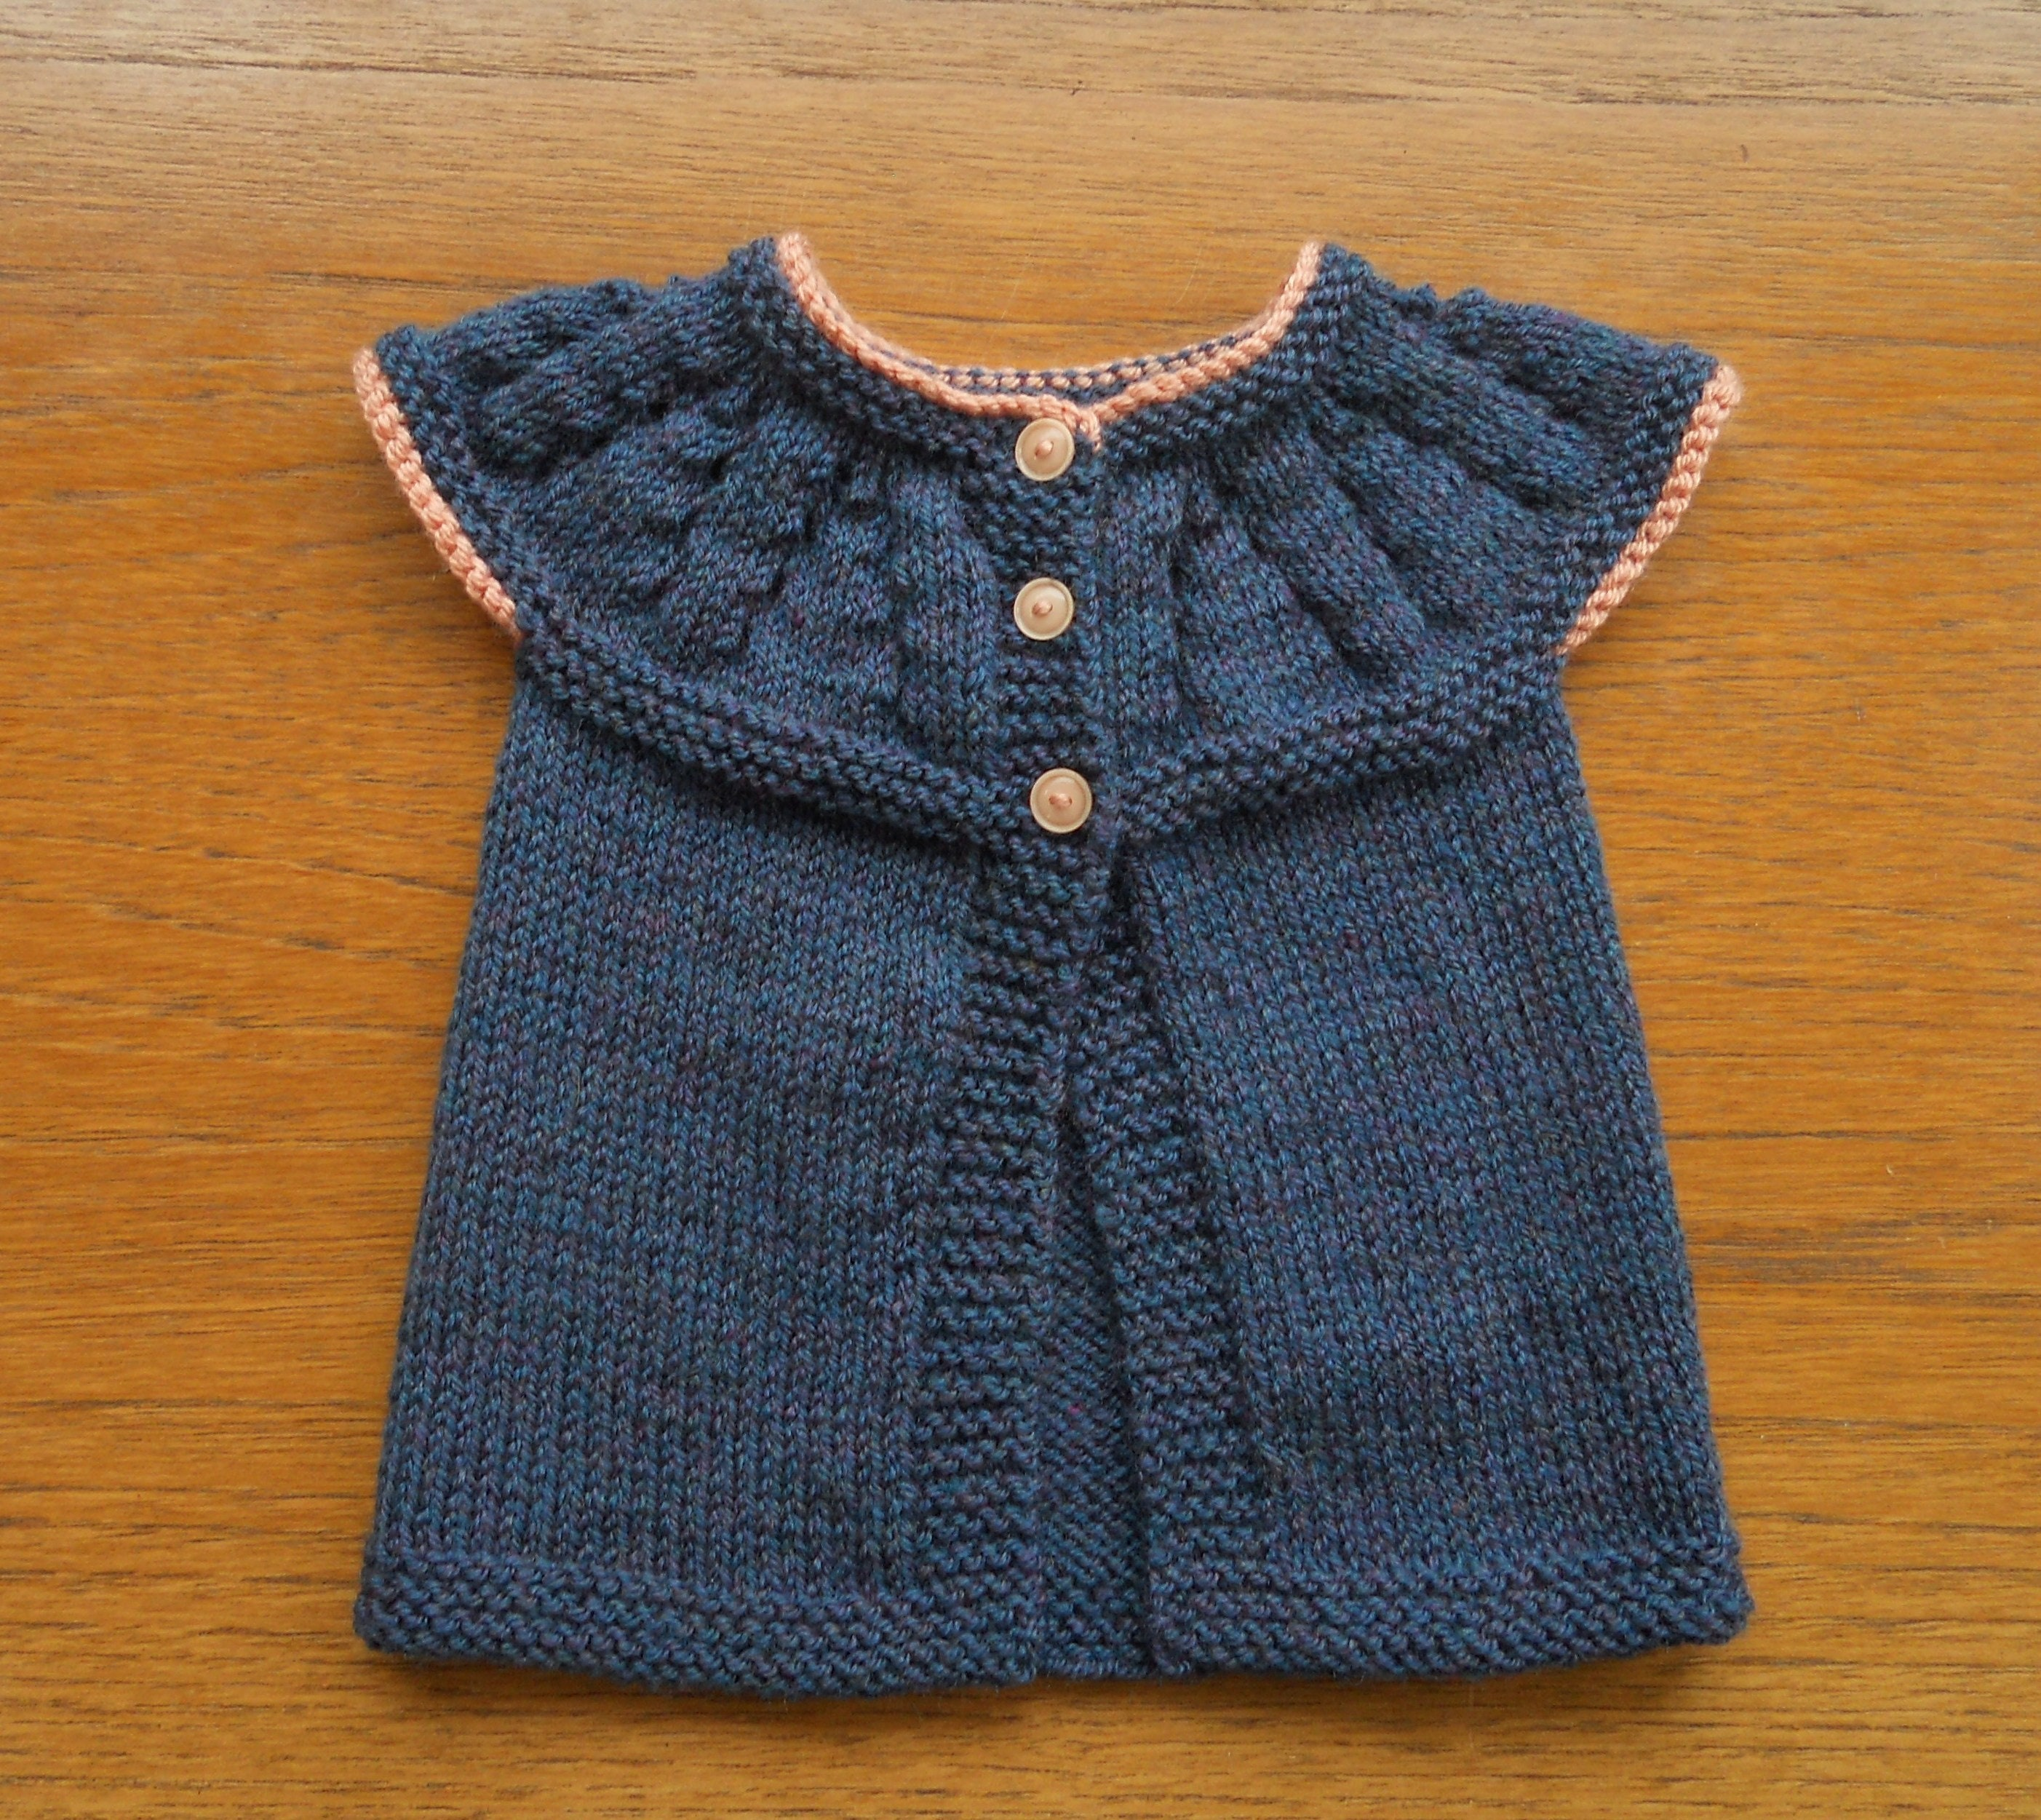 Navy Blue and Multi Cardigan Age 6 to 12 monthes. Babies Hand knit jacket